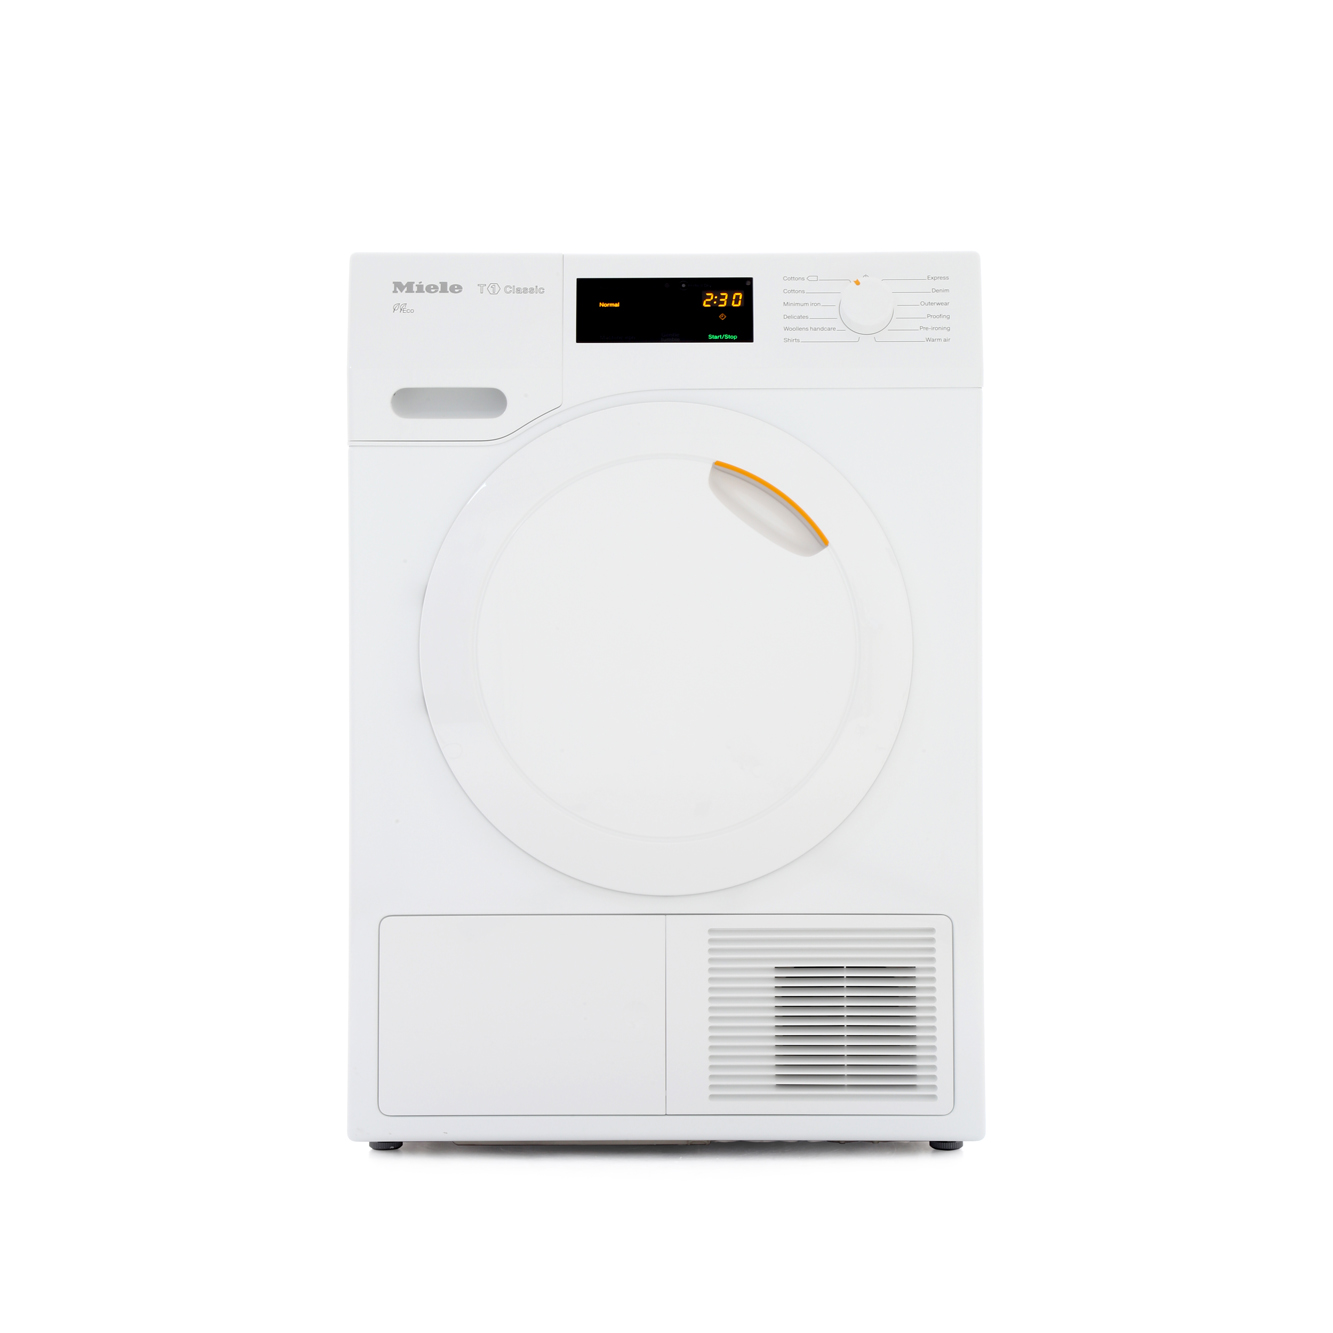 buy miele t1 classic tdb130 white condenser dryer tdb130white lotus white marks electrical. Black Bedroom Furniture Sets. Home Design Ideas